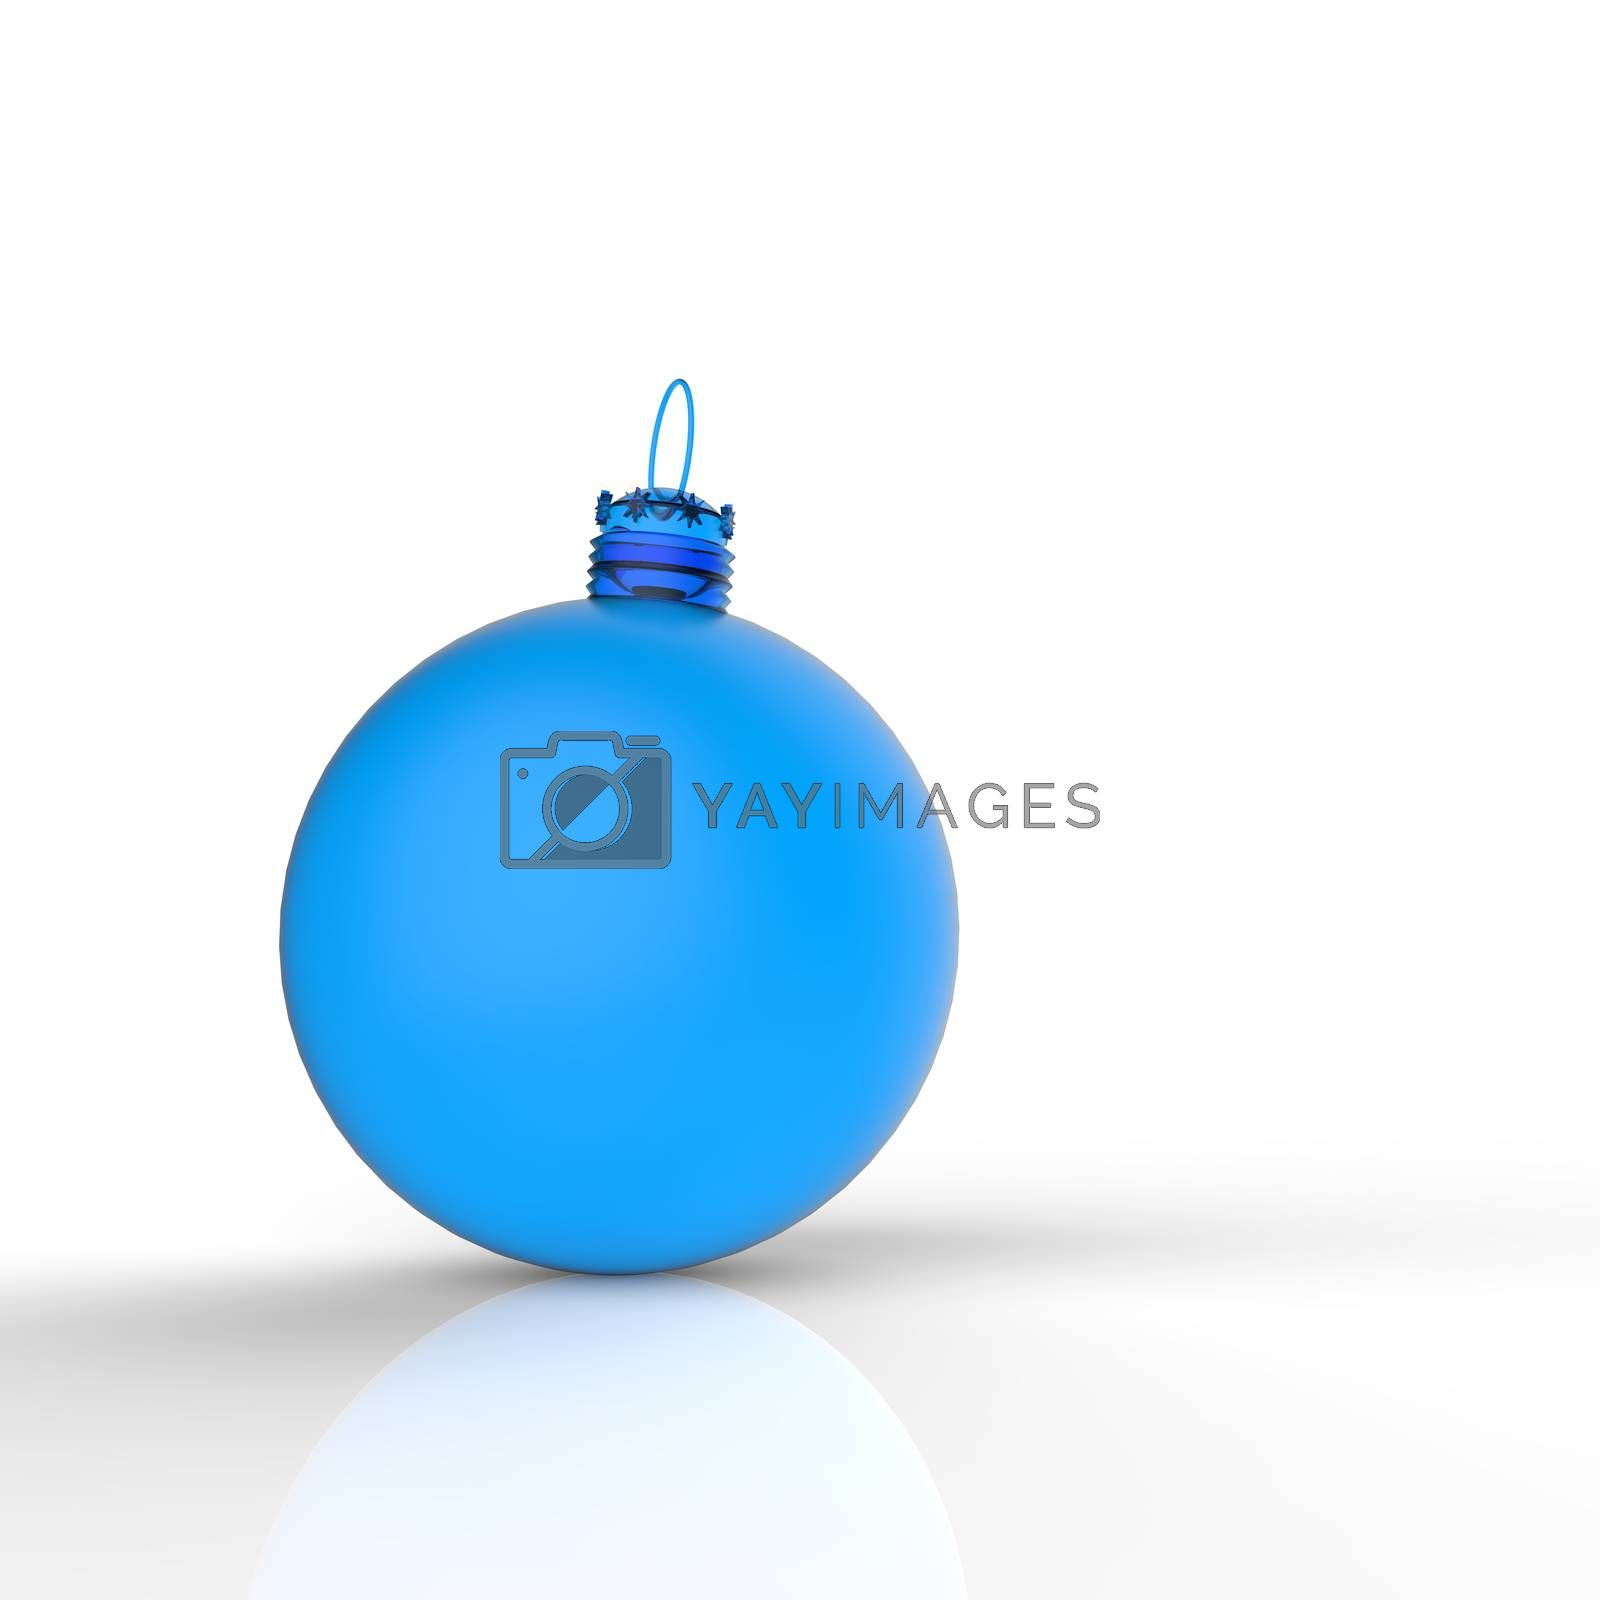 Royalty free image of Christmas ball ornaments on white background by everythingpossible